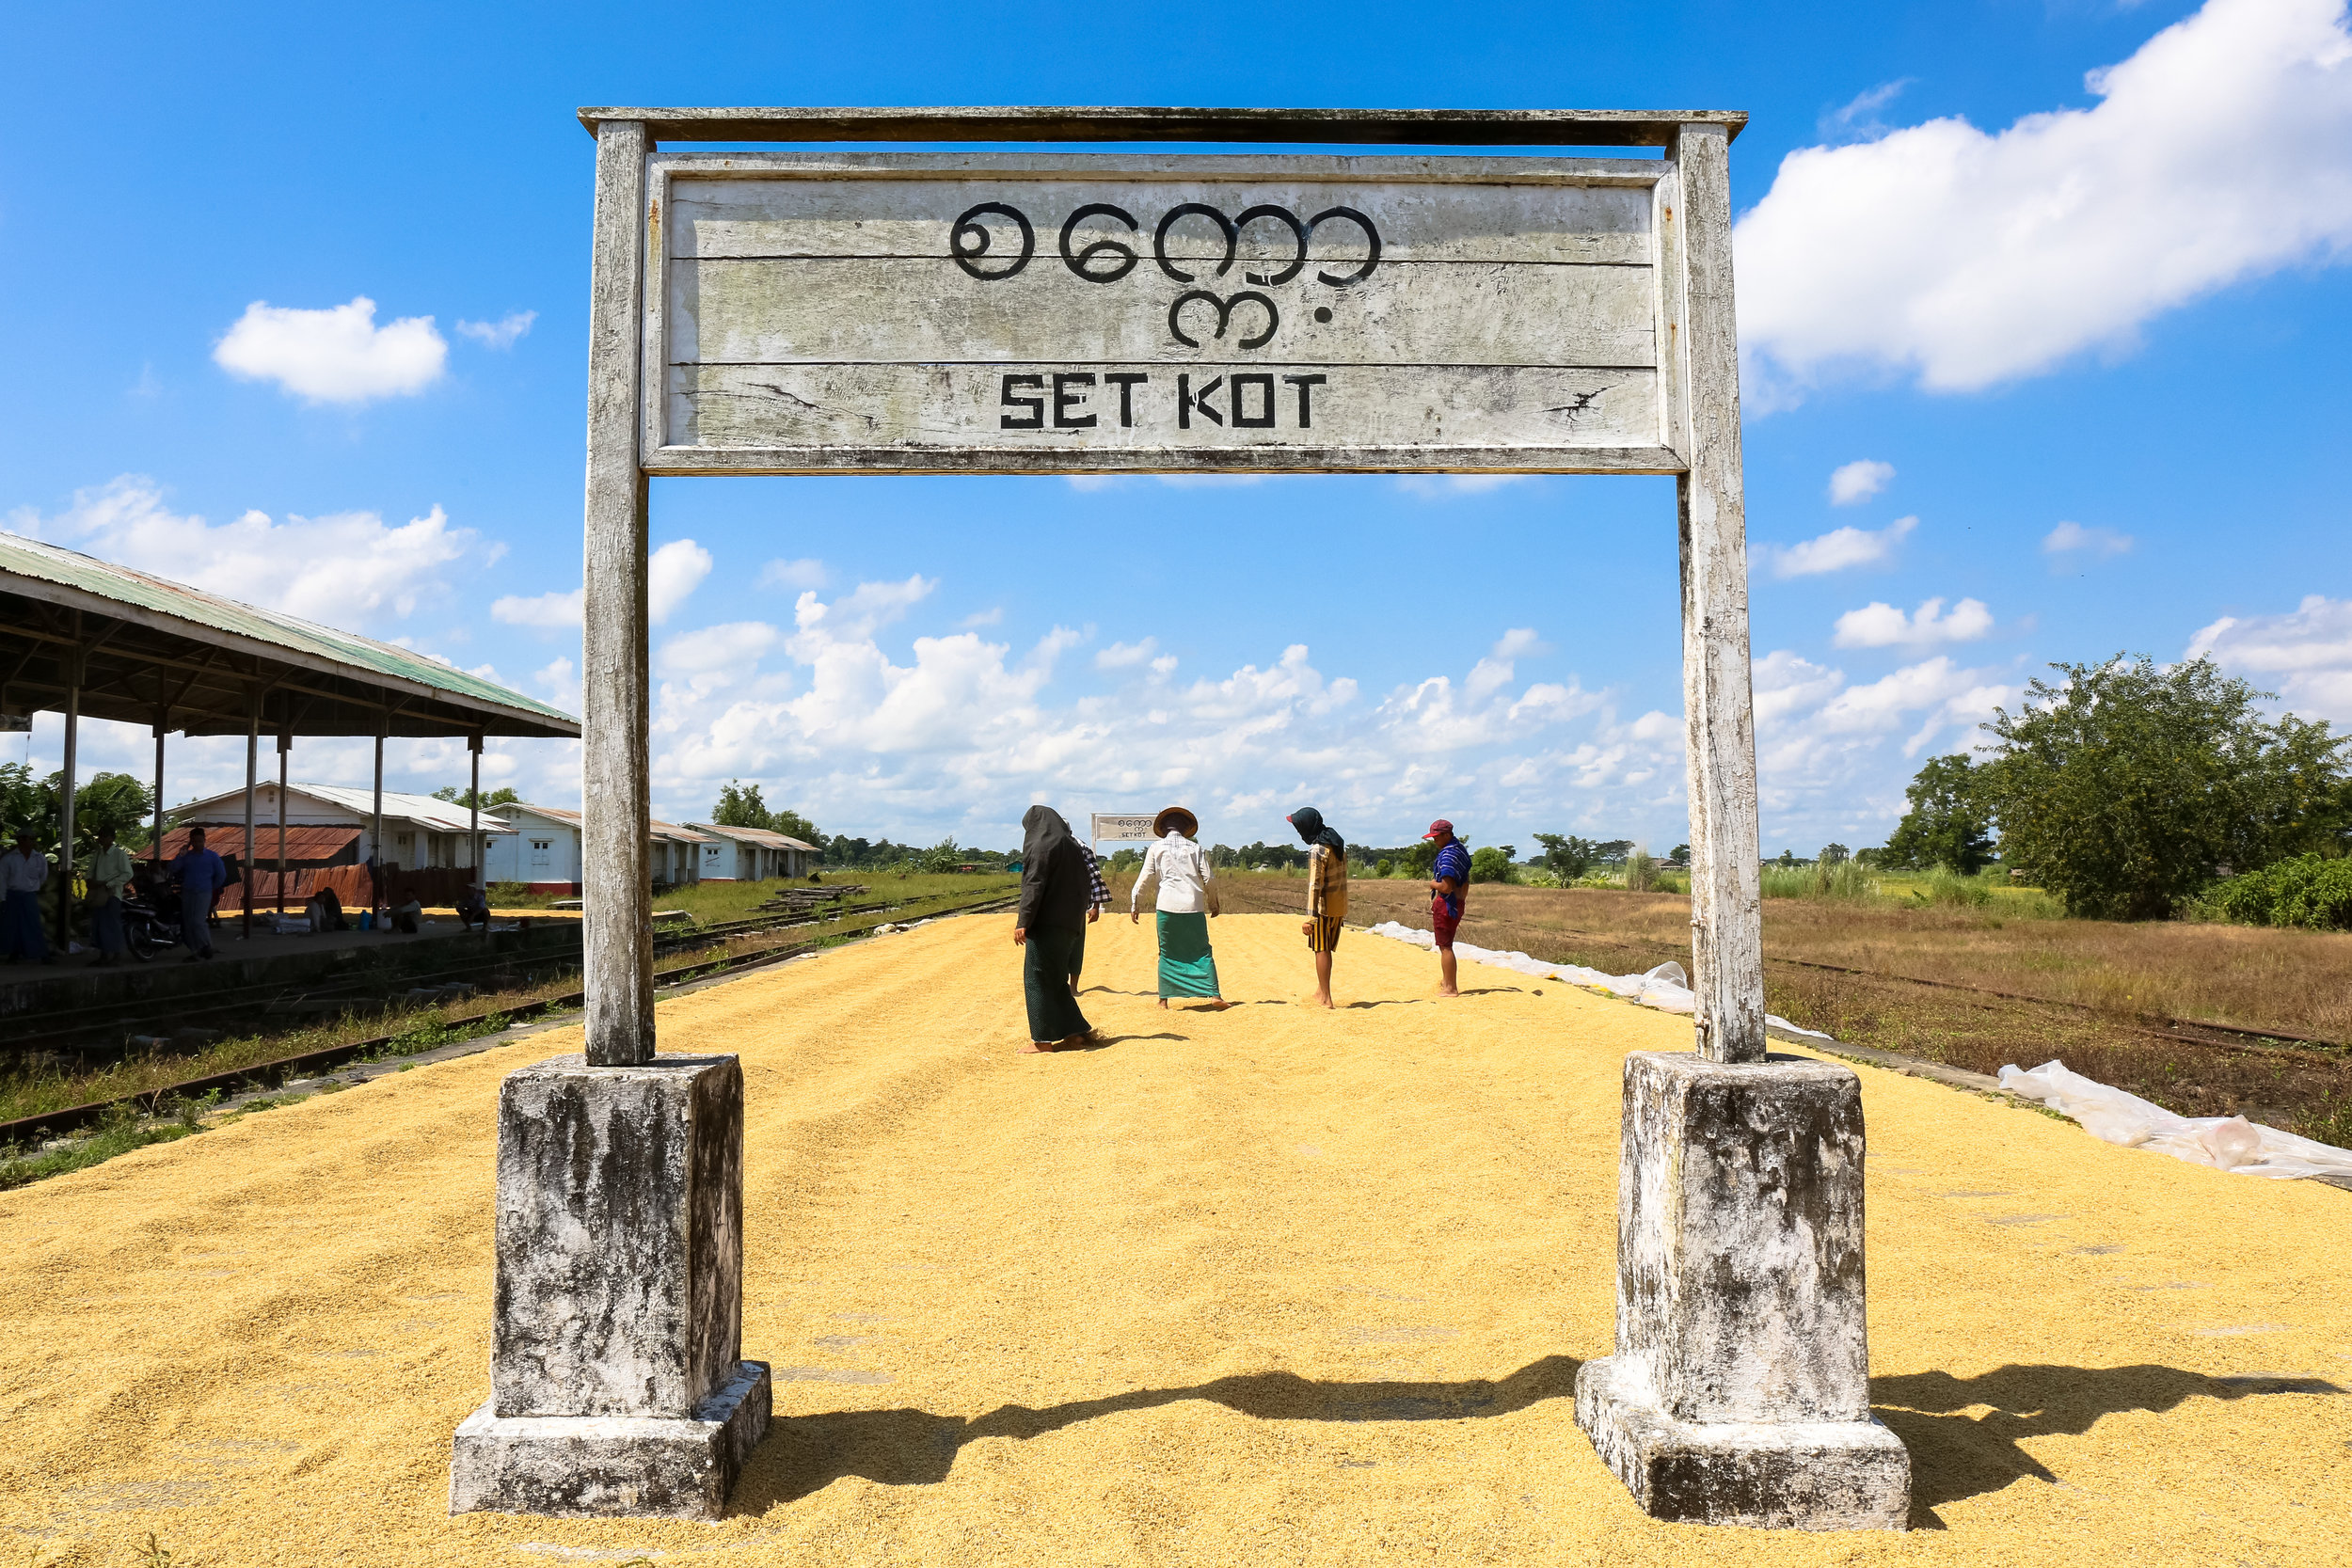 Rice is dried at a train station built under military-junta rule. Irrawaddy Region, Myanmar.